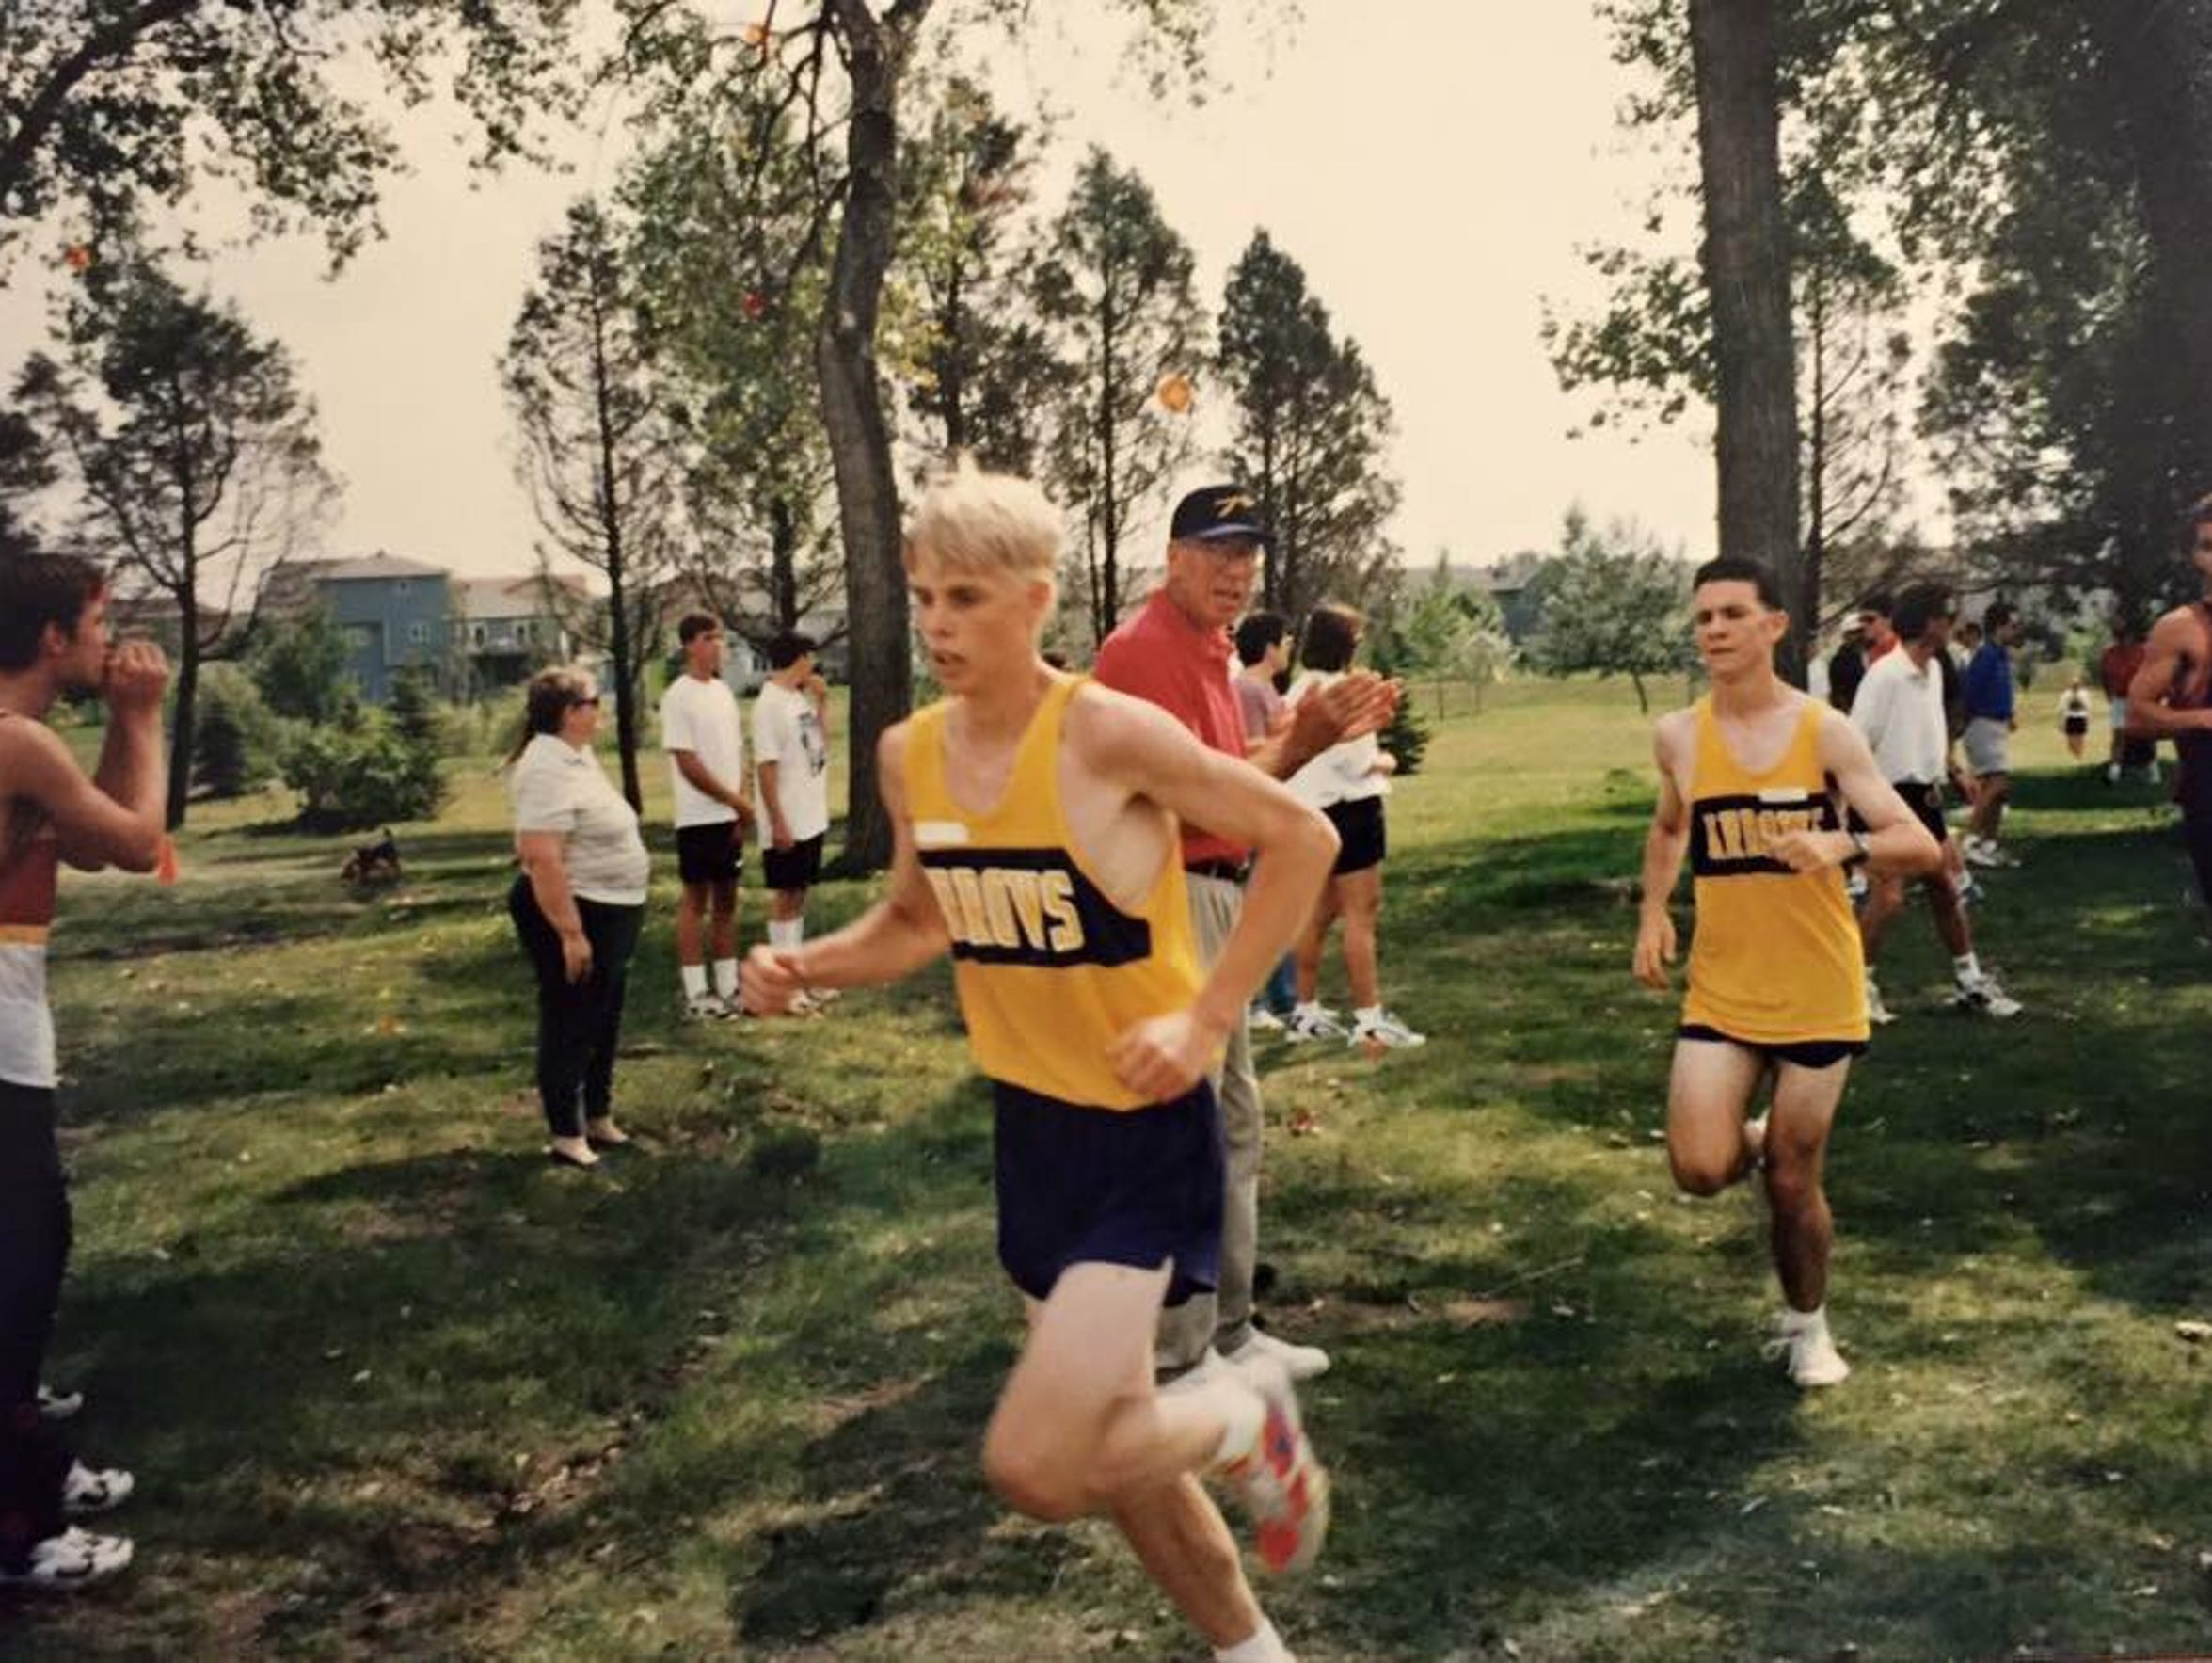 Rob Hoover, front, runs in a cross country meet for